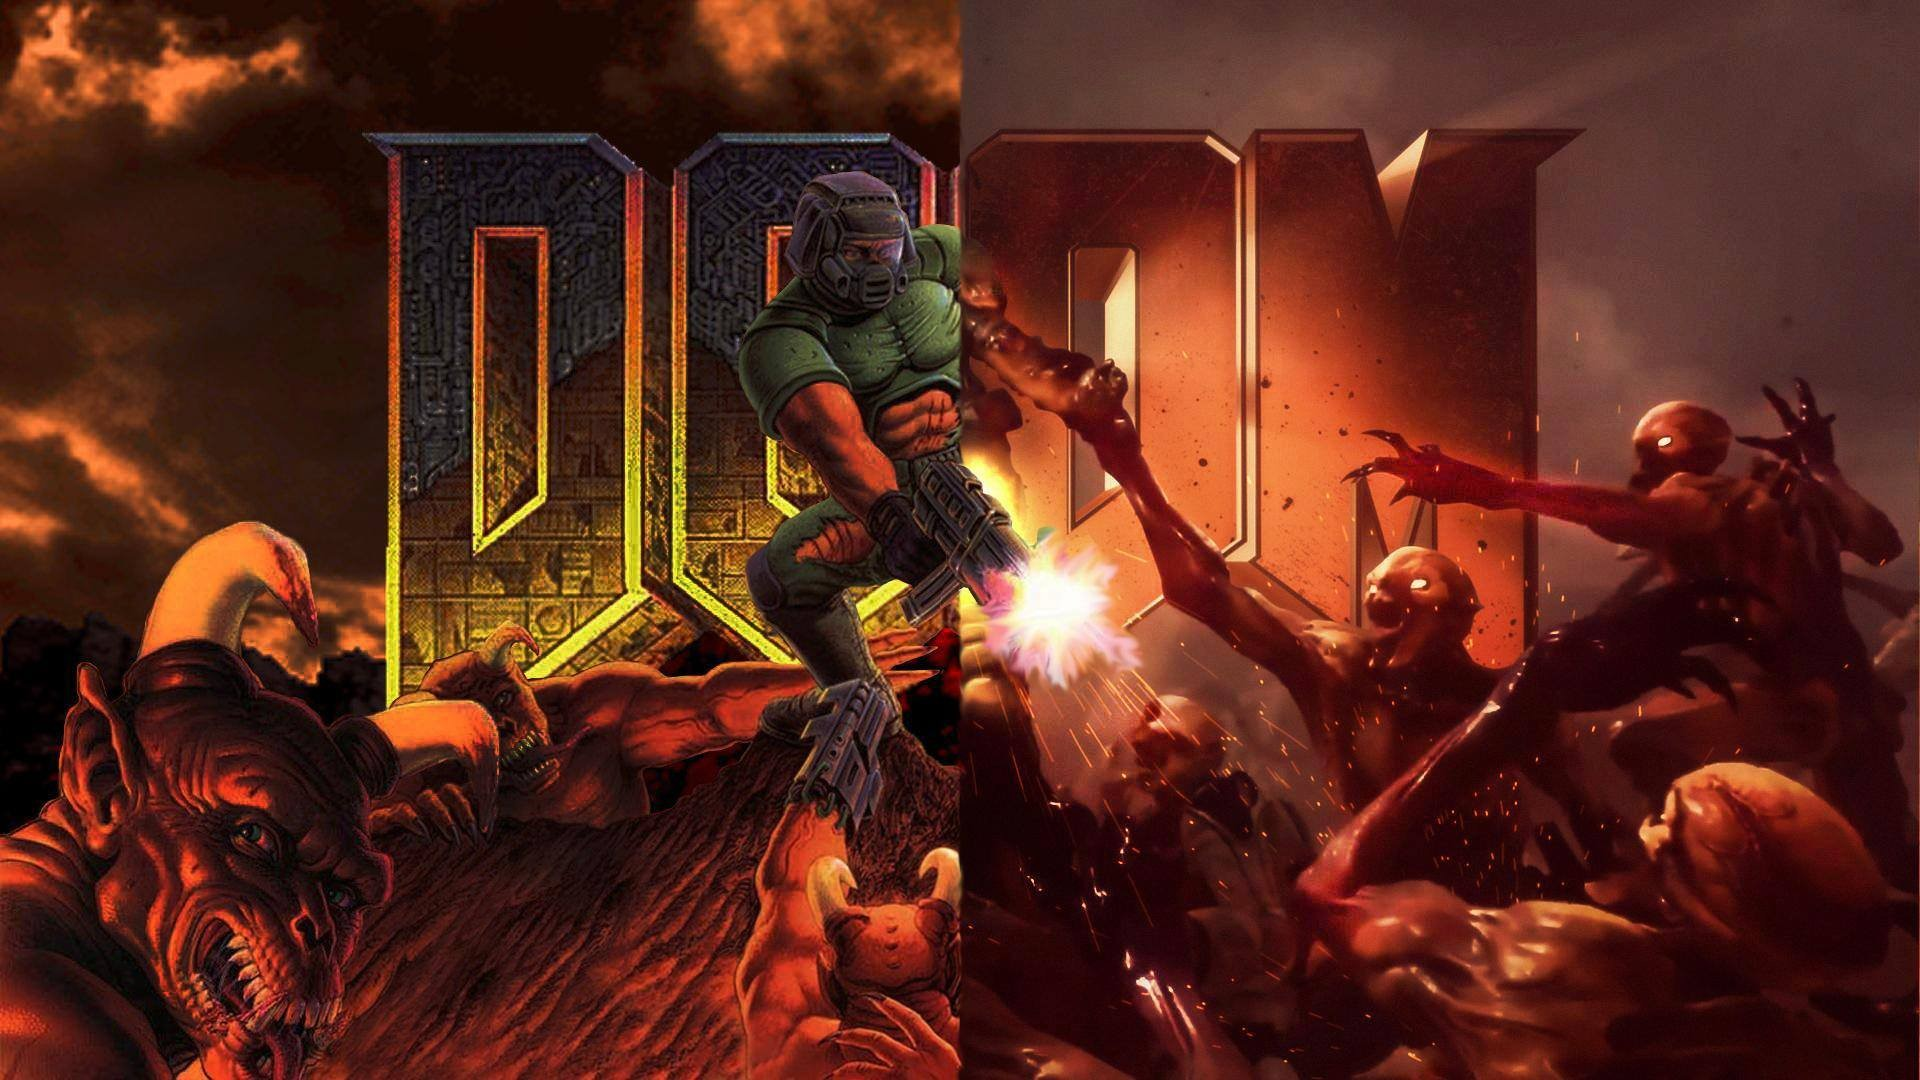 """saransh kataria on Twitter: """"DOOM 4 (2016) Game Review  https://t.co/gt0H0xLmeY #doom #doom4 #doom2016 https://t.co/dARP8oINDH"""""""